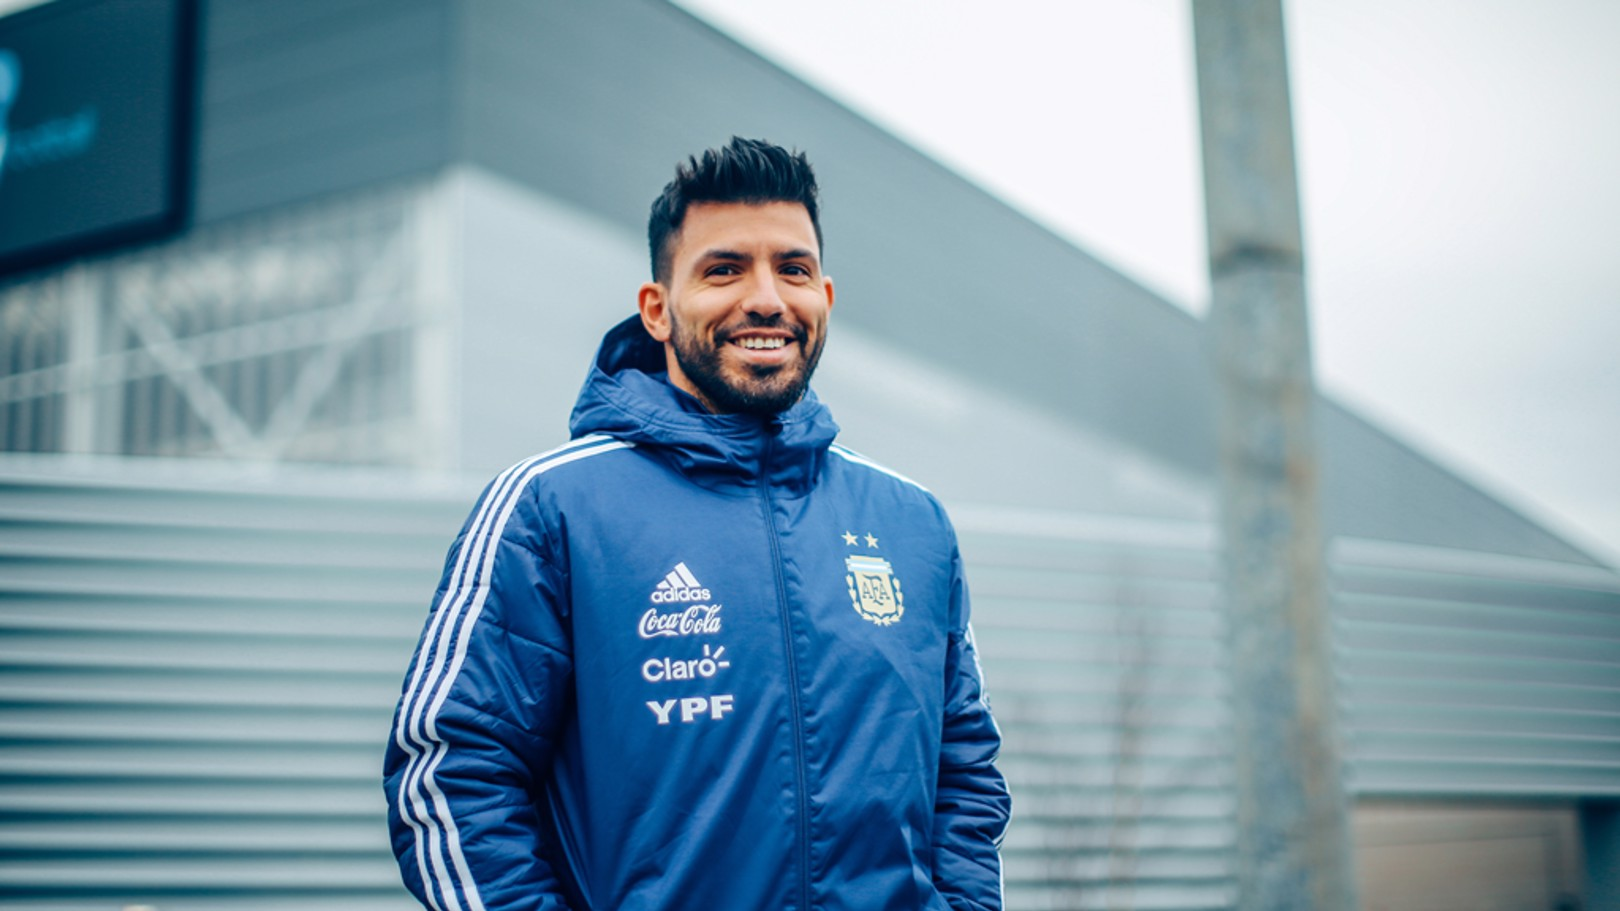 CITY SMILE: Sergio spots our camera